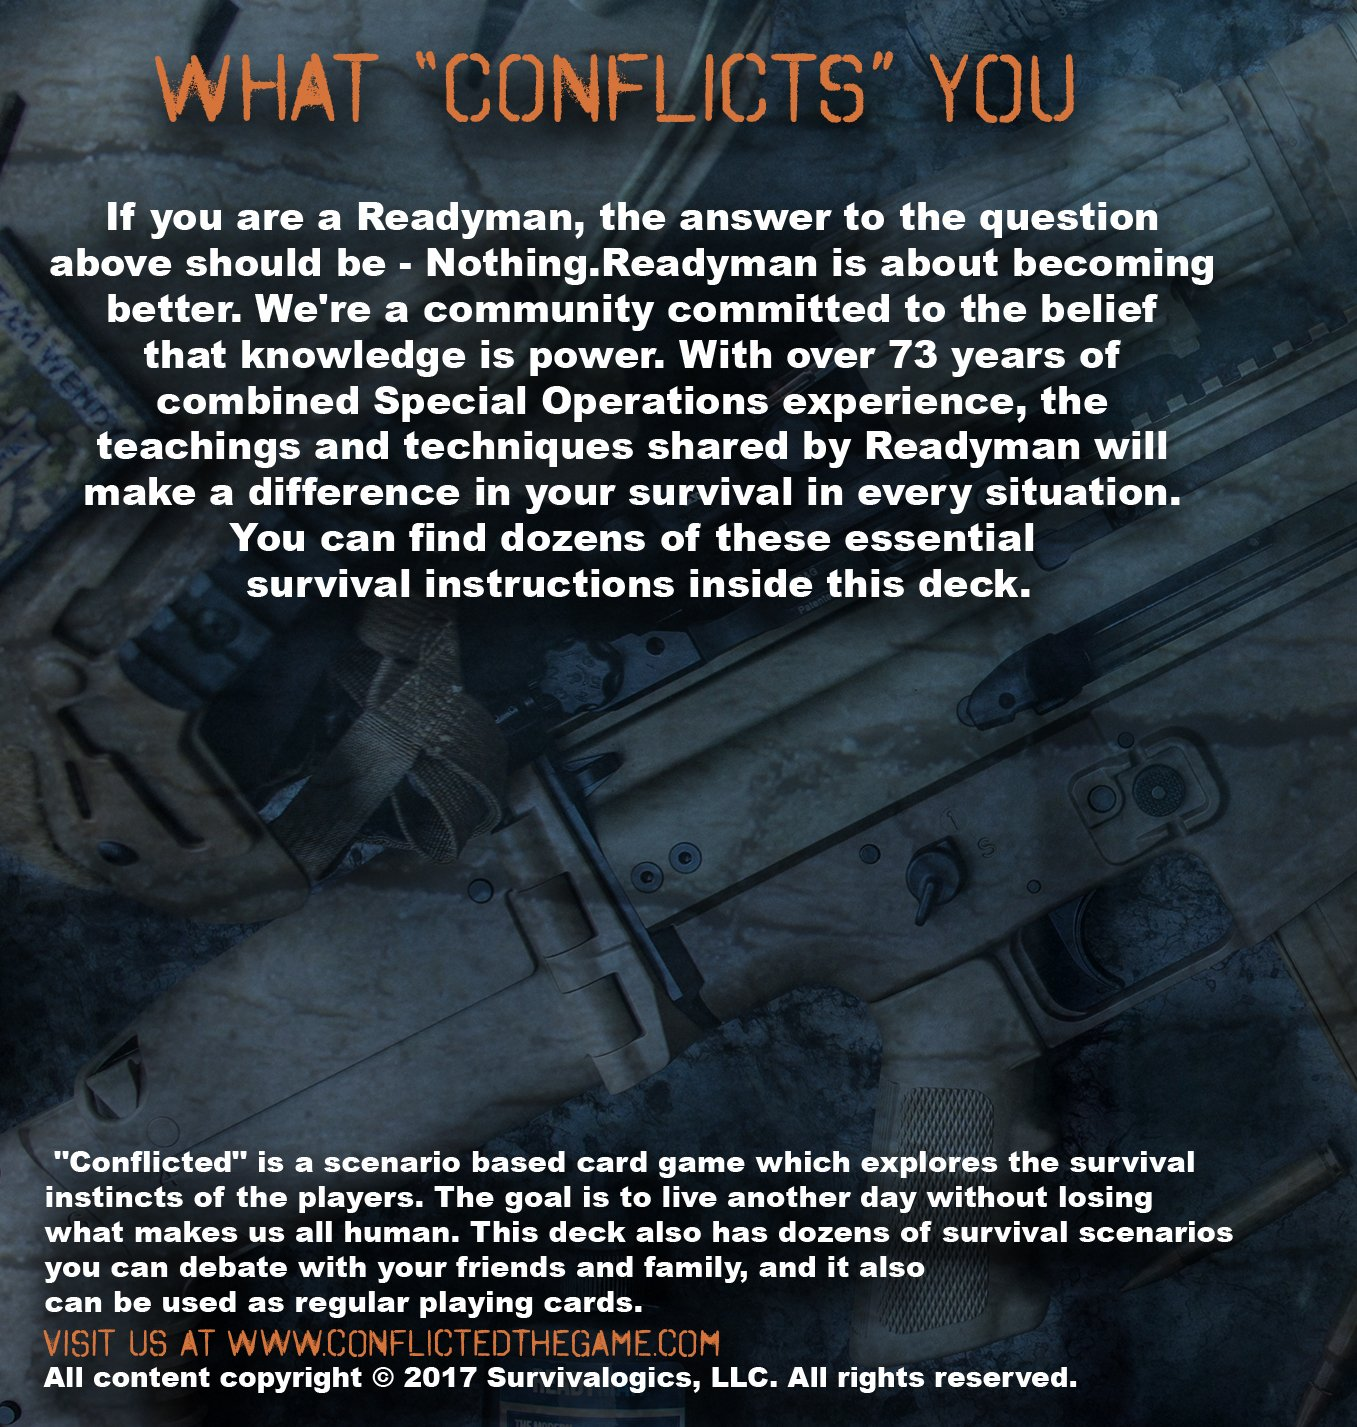 Conflicted: The Survival Card Game Deck 10 - ReadyMan (bonus tool)